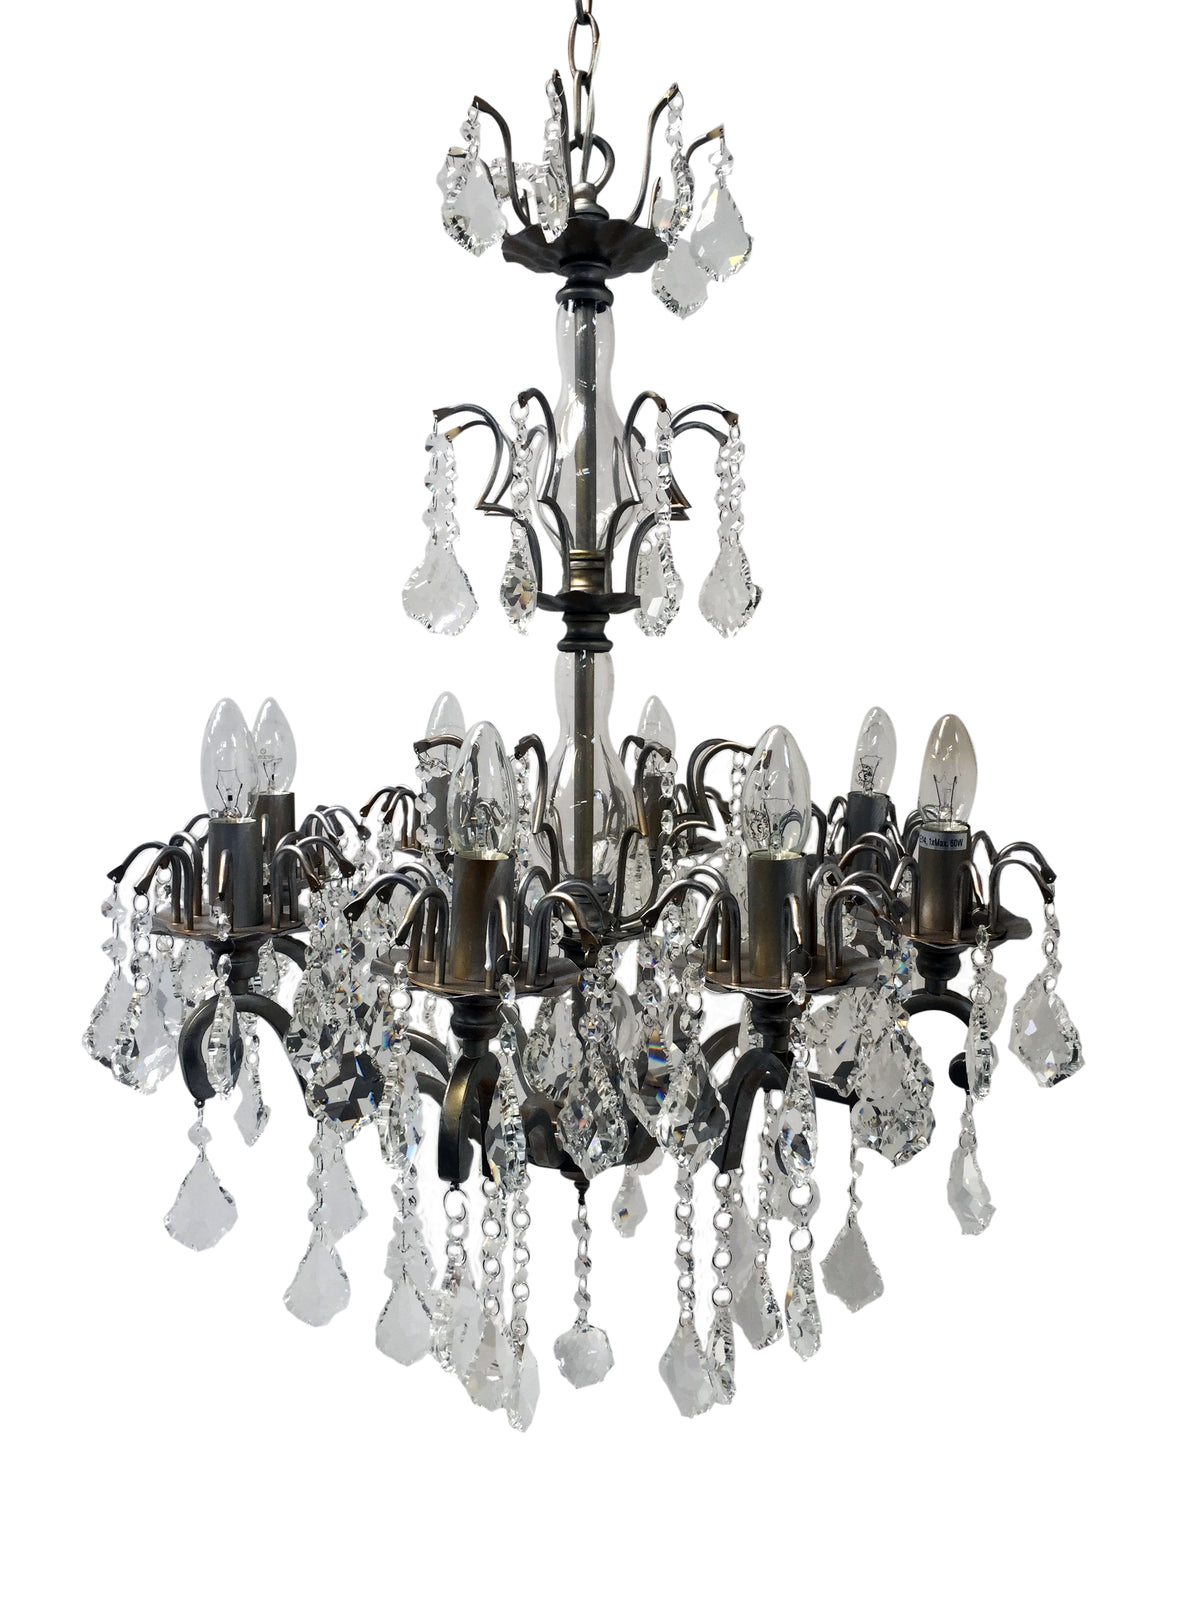 8 arm chandelier in an antique silver finish with crystal drops